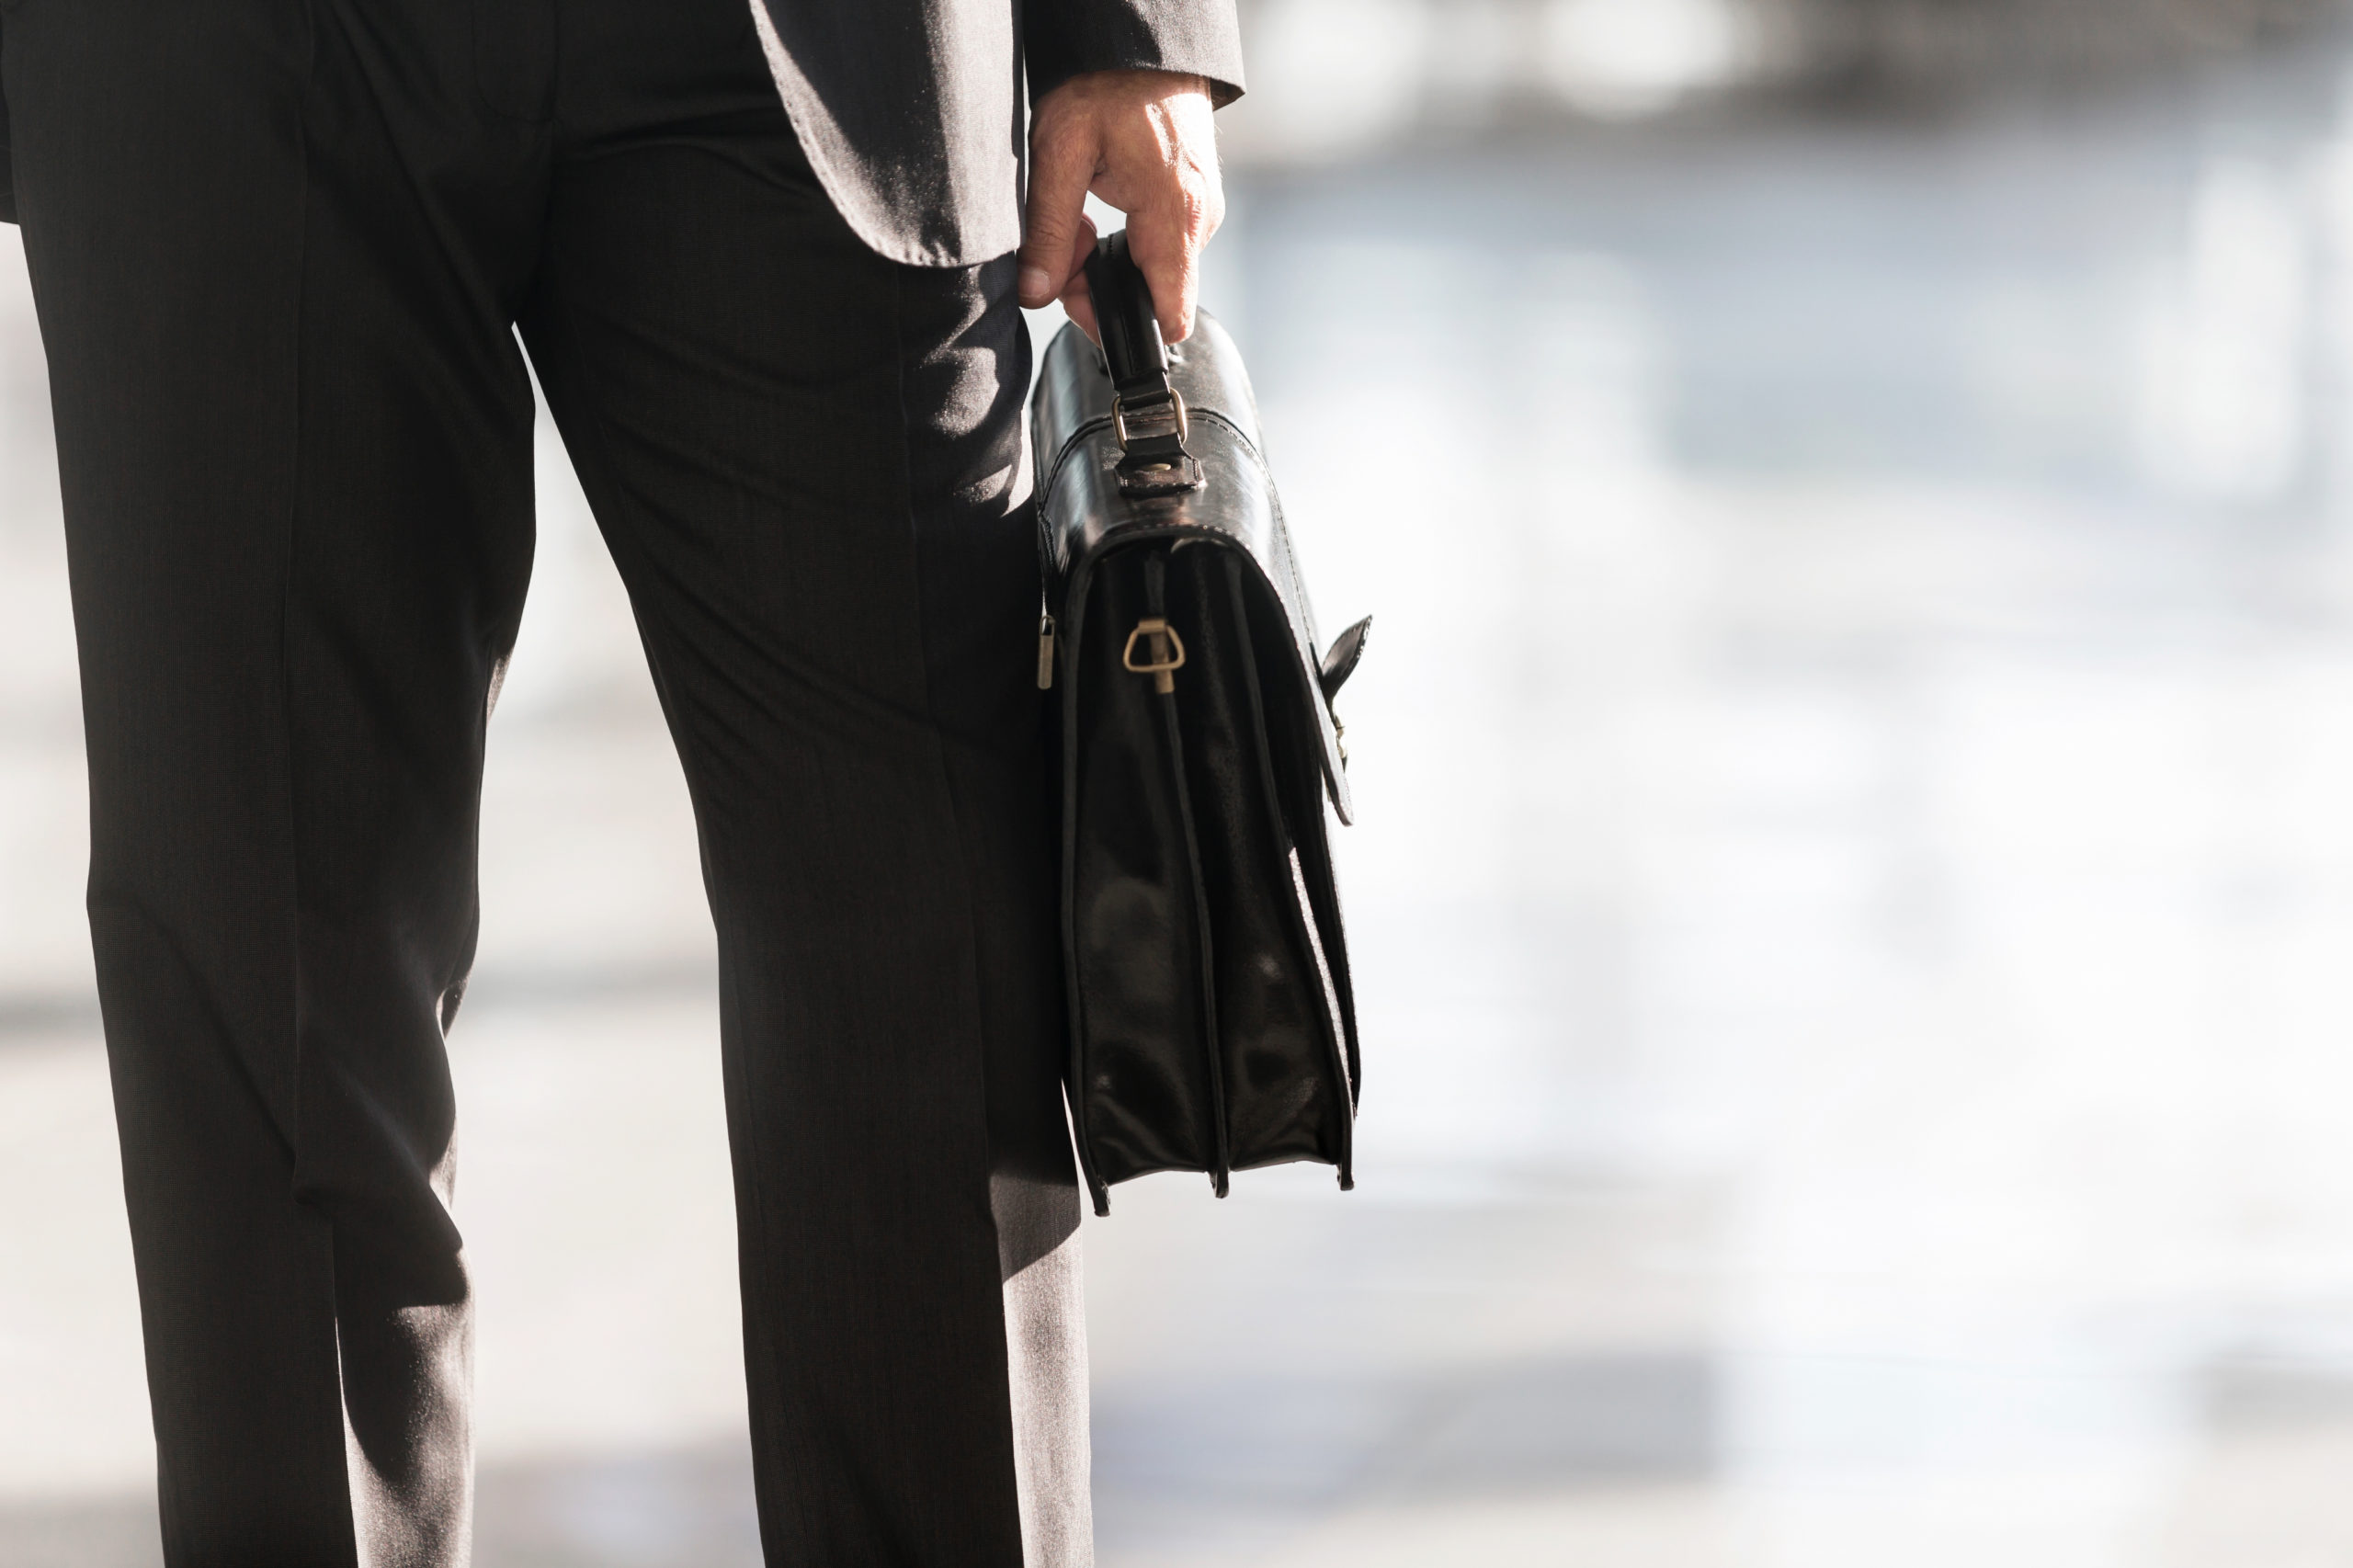 man in a suit holding a carry on bag